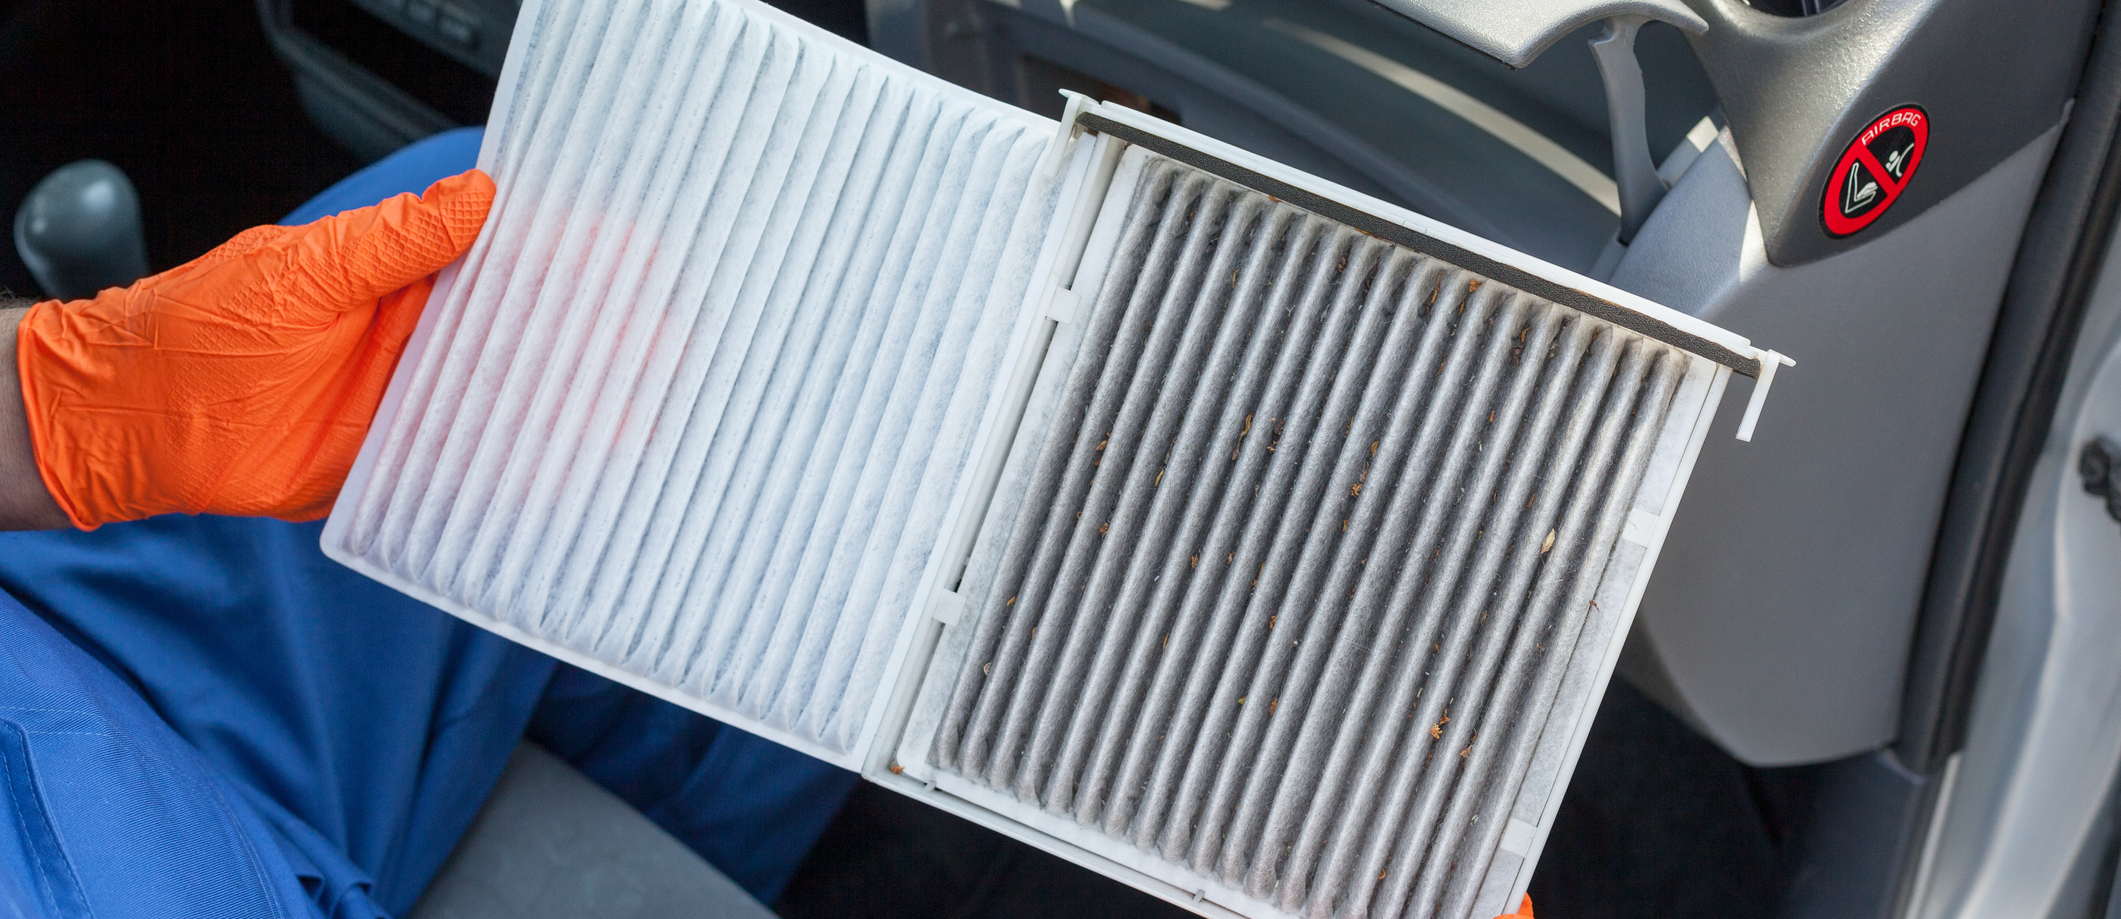 Cabin Air Filter Replacement Service in San Antonio, TX